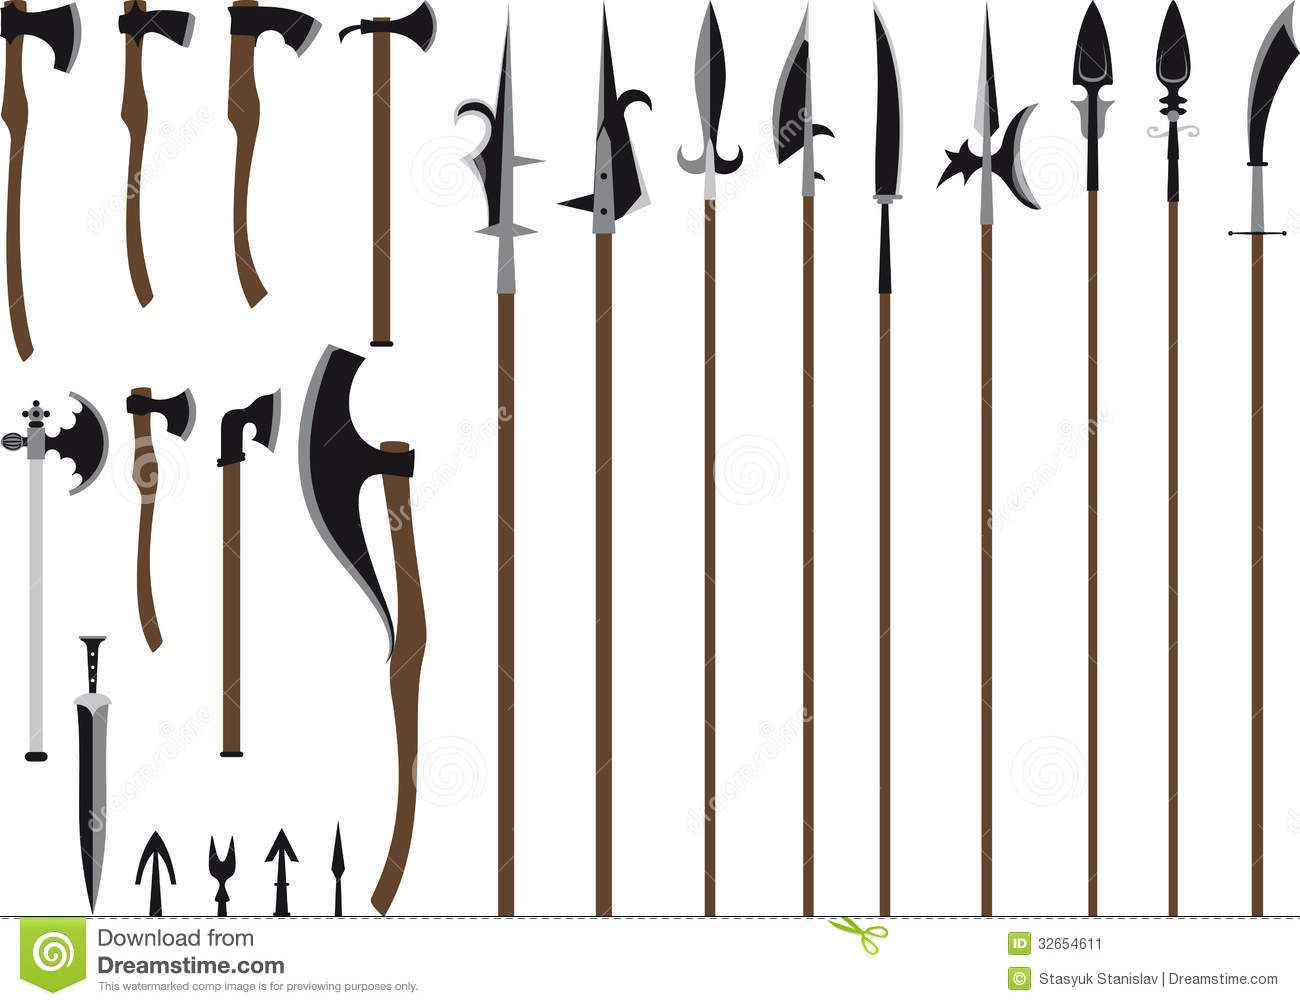 Medieval weapons clipart clip art download spears weapon - Google Search | Weapon Ideas | Medieval weapons ... clip art download